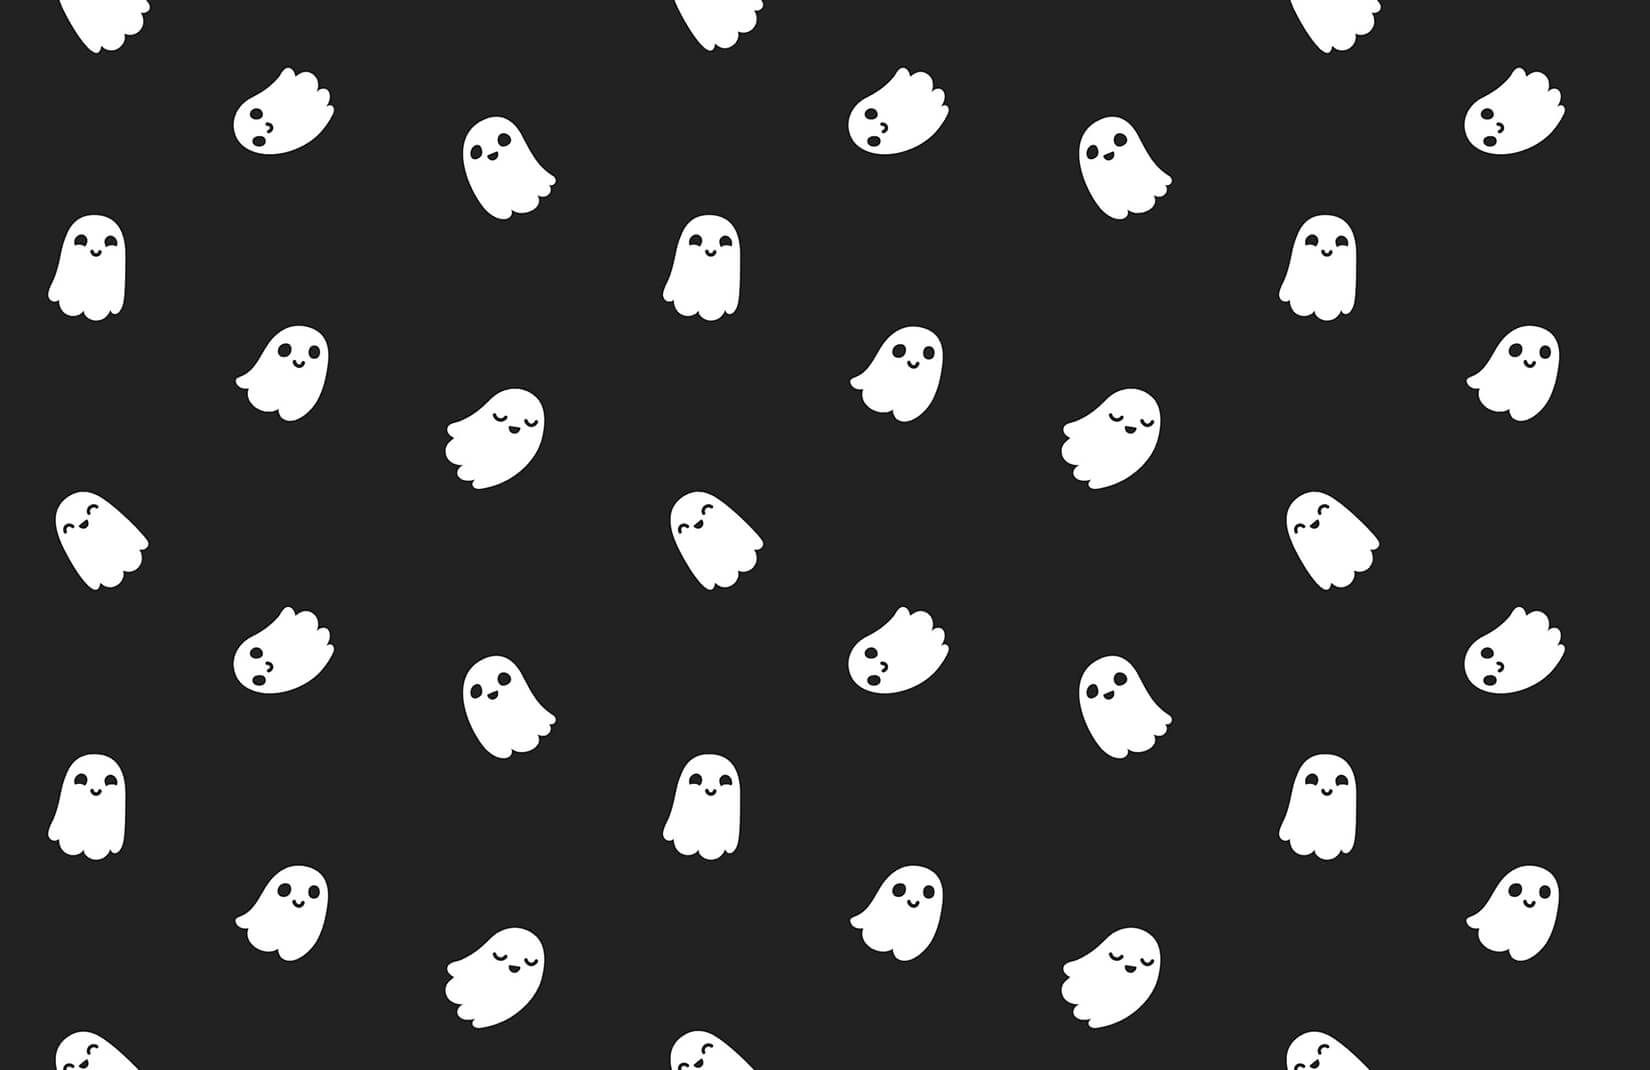 Little Ghost Wallpaper Mural Murals Wallpaper In 2020 Halloween Wallpaper Cute Cute Desktop Wallpaper Halloween Desktop Wallpaper